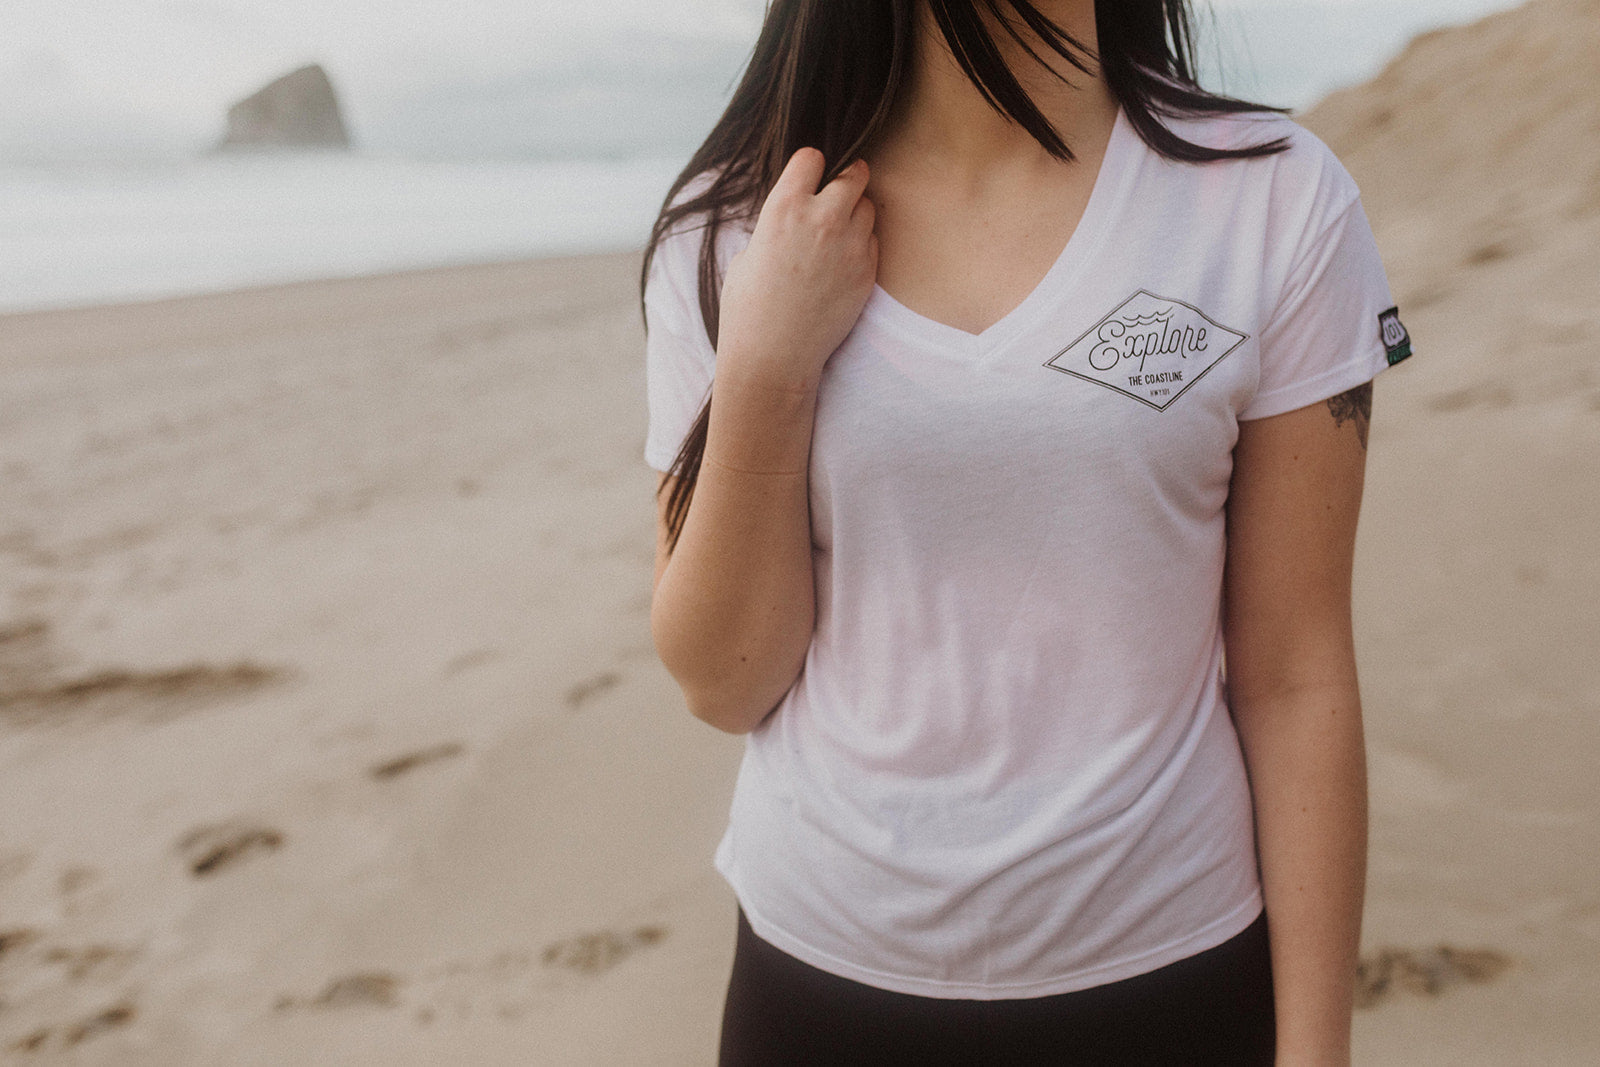 Explore The Coastline V-Neck